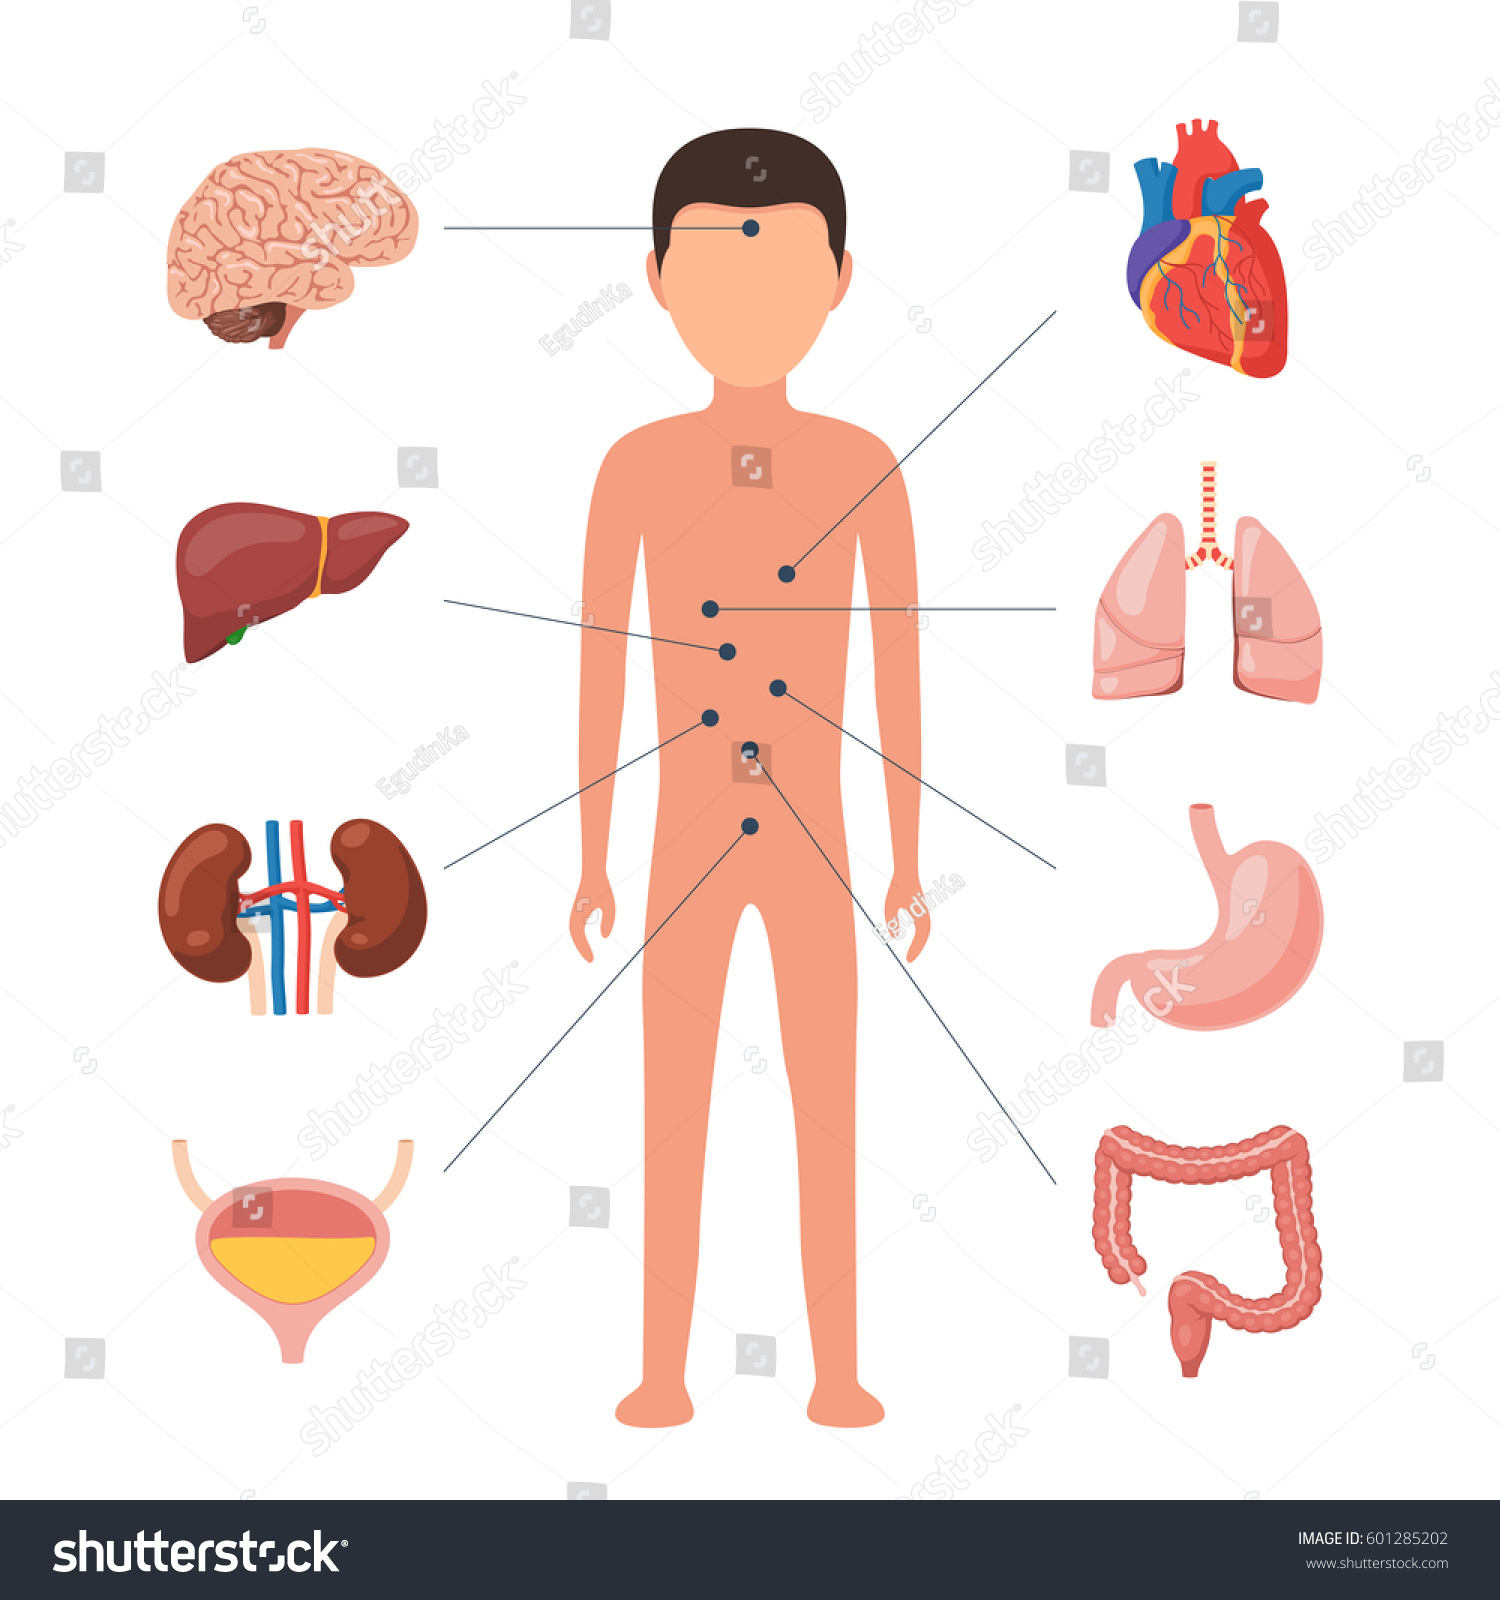 Human Body Anatomy Medical Diagram Organs Stock Vector Royalty Free